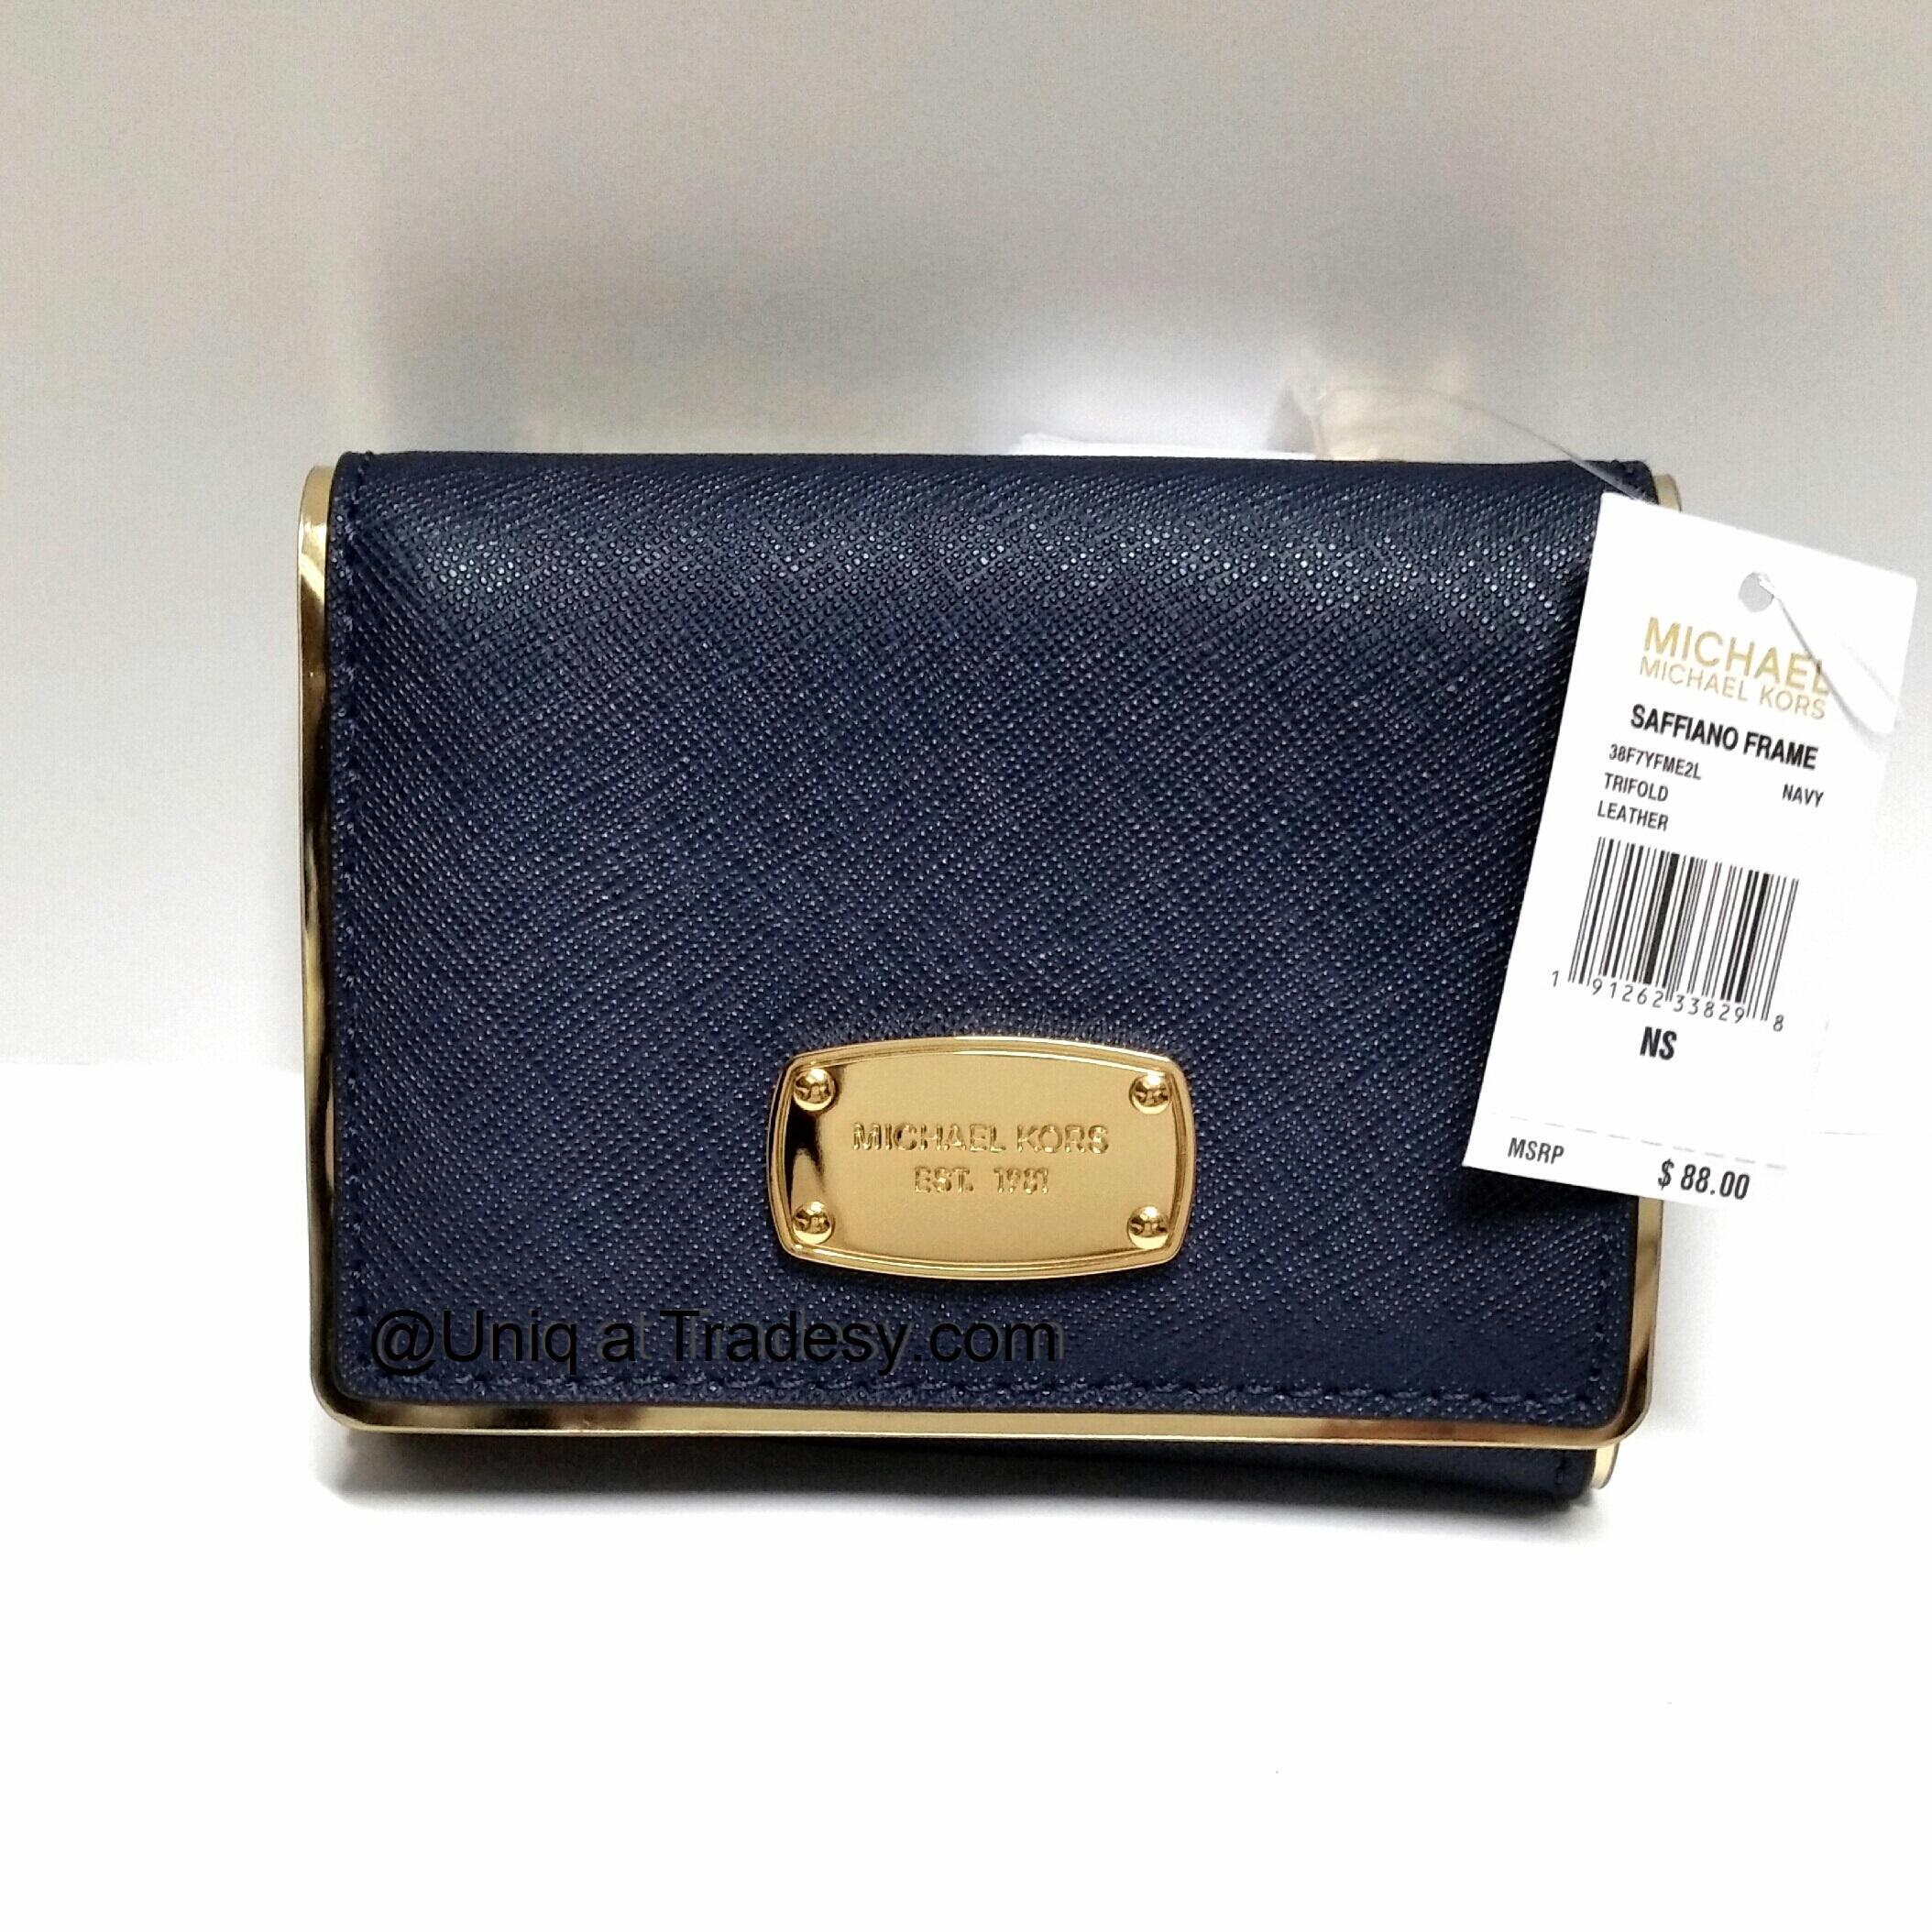 4cb328ad5bfb ... wallet signature mk navy 614d3 febcf; clearance michael kors navy blue  leather gold tone hardware mk saffiano frame tri fold billfold coin